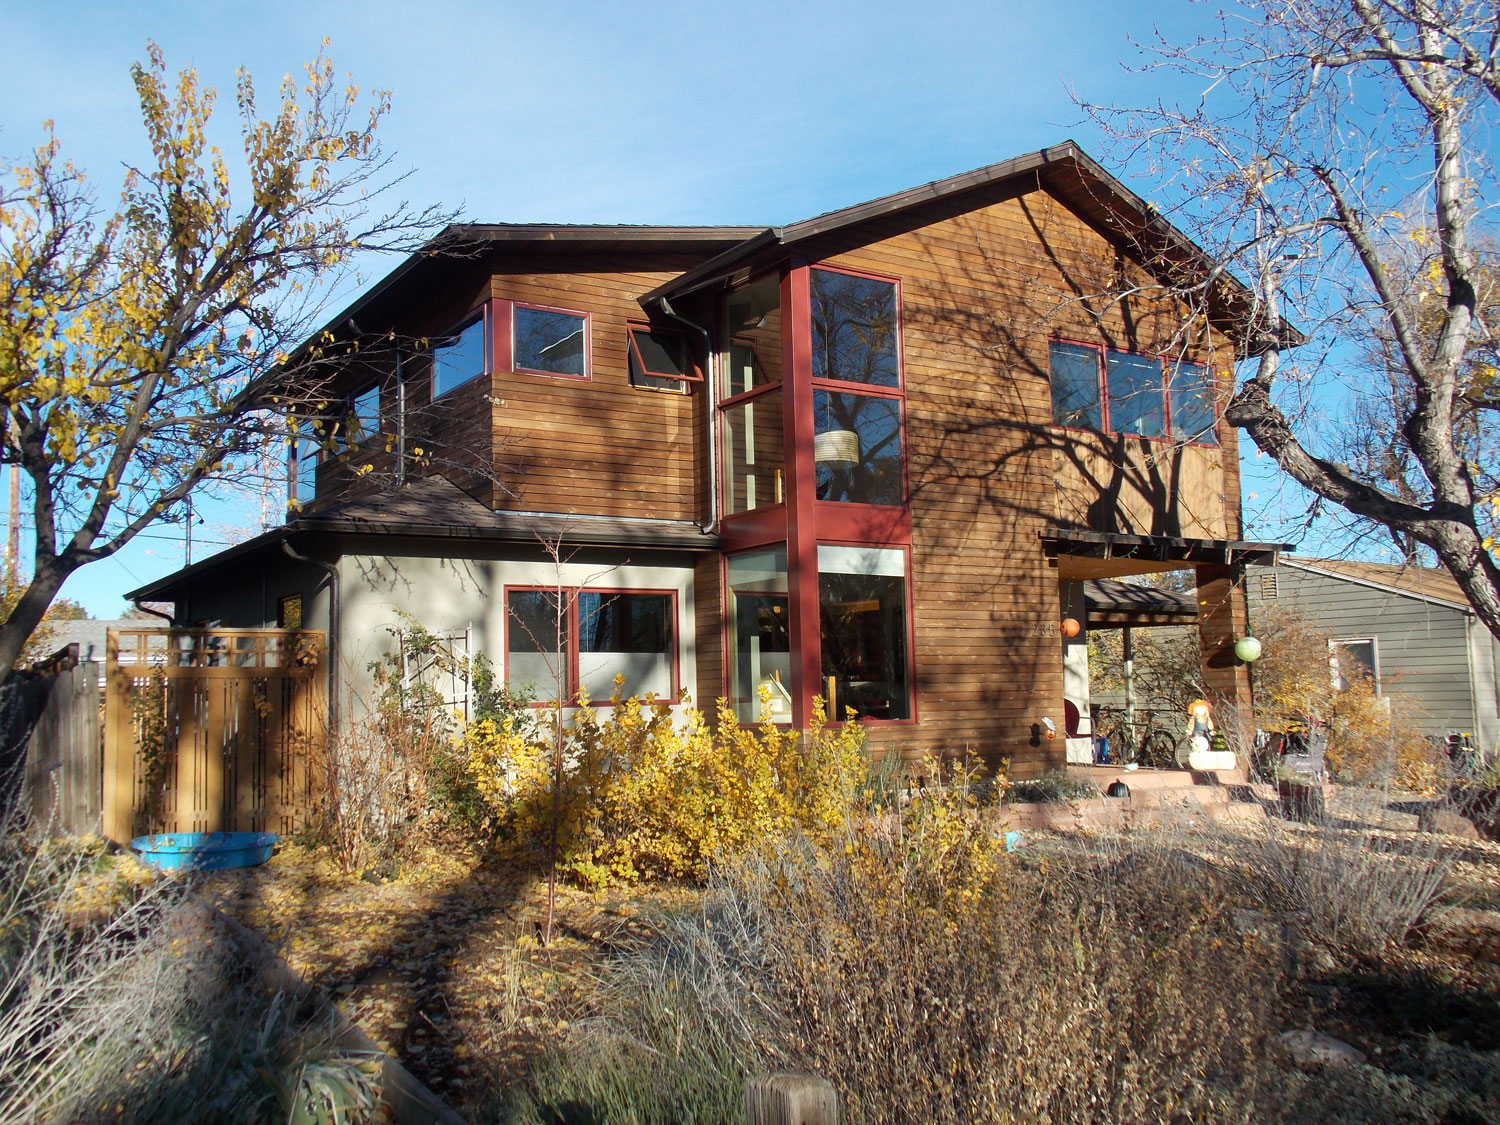 SOUTH-BOULDER-EXTERIOR-WEB-OPT